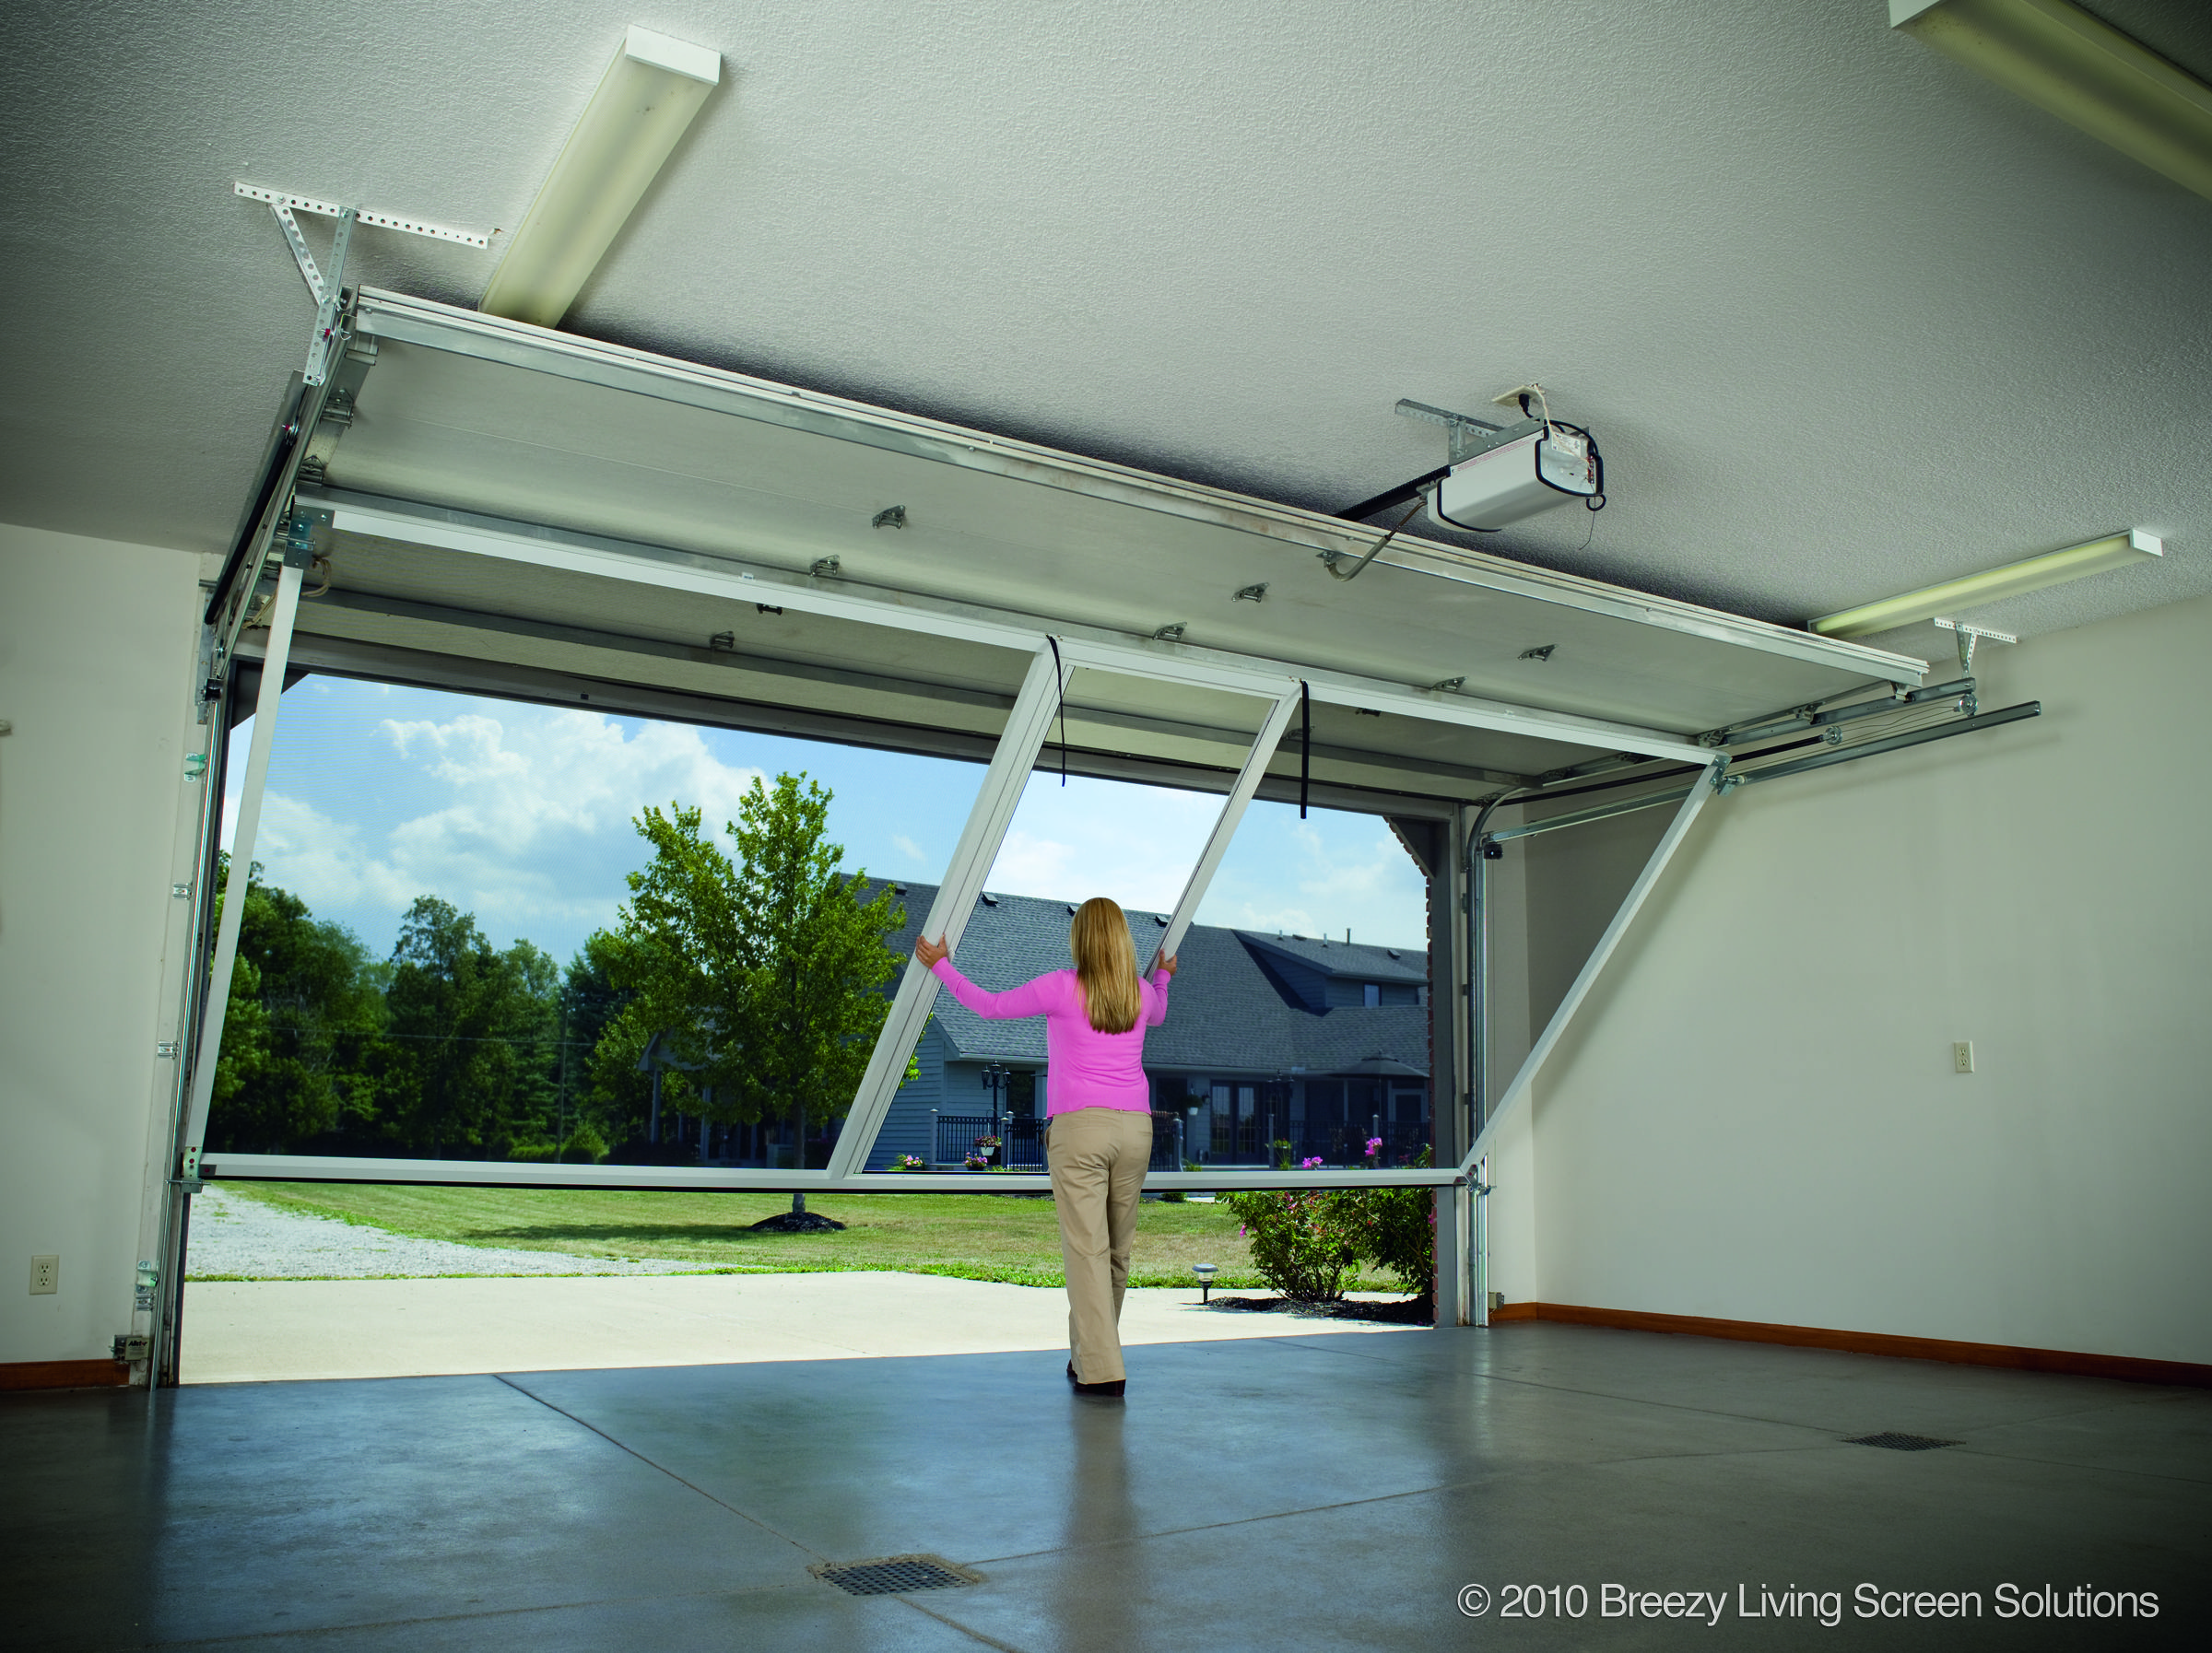 Retractable garage door - Storm Shield Garage Door Threshold Garage Door Seal Garage Doors Pinterest Garage Door Threshold Garage Doors And Storms